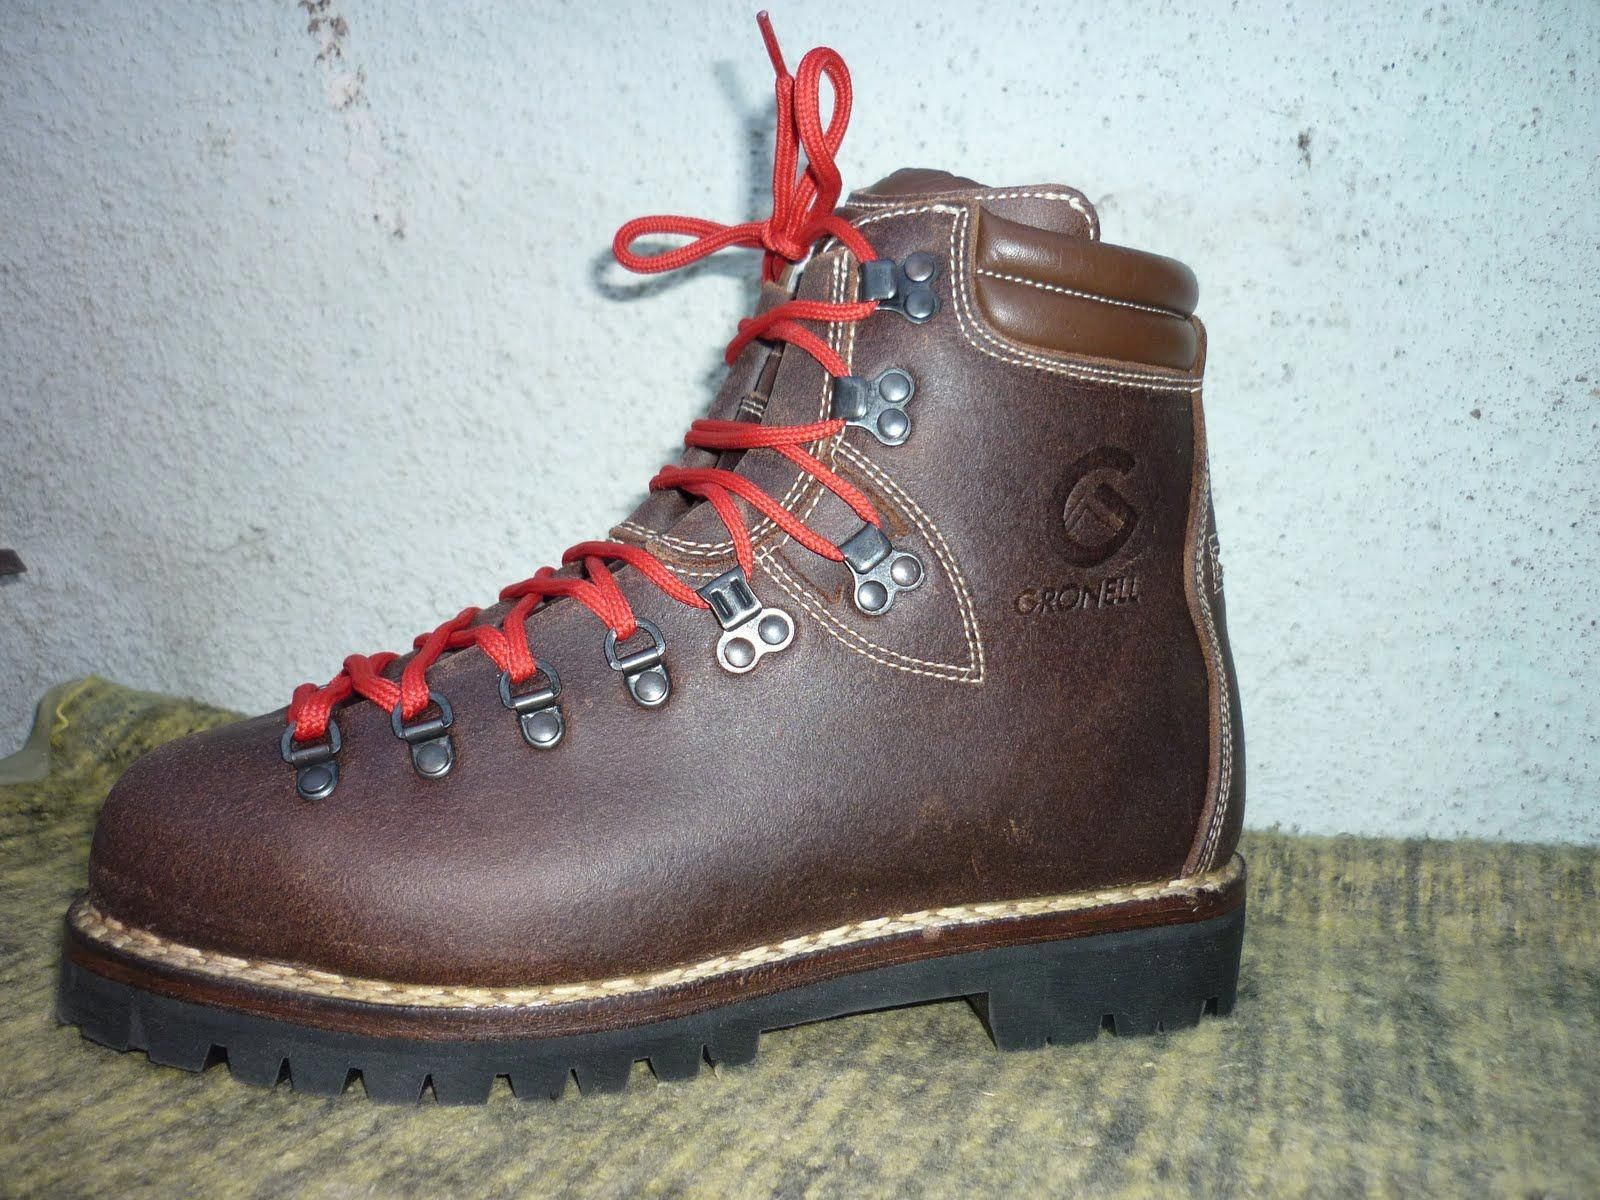 0adfce933d03 Handmade Italian Hiking Boots From Gronell Double Sched